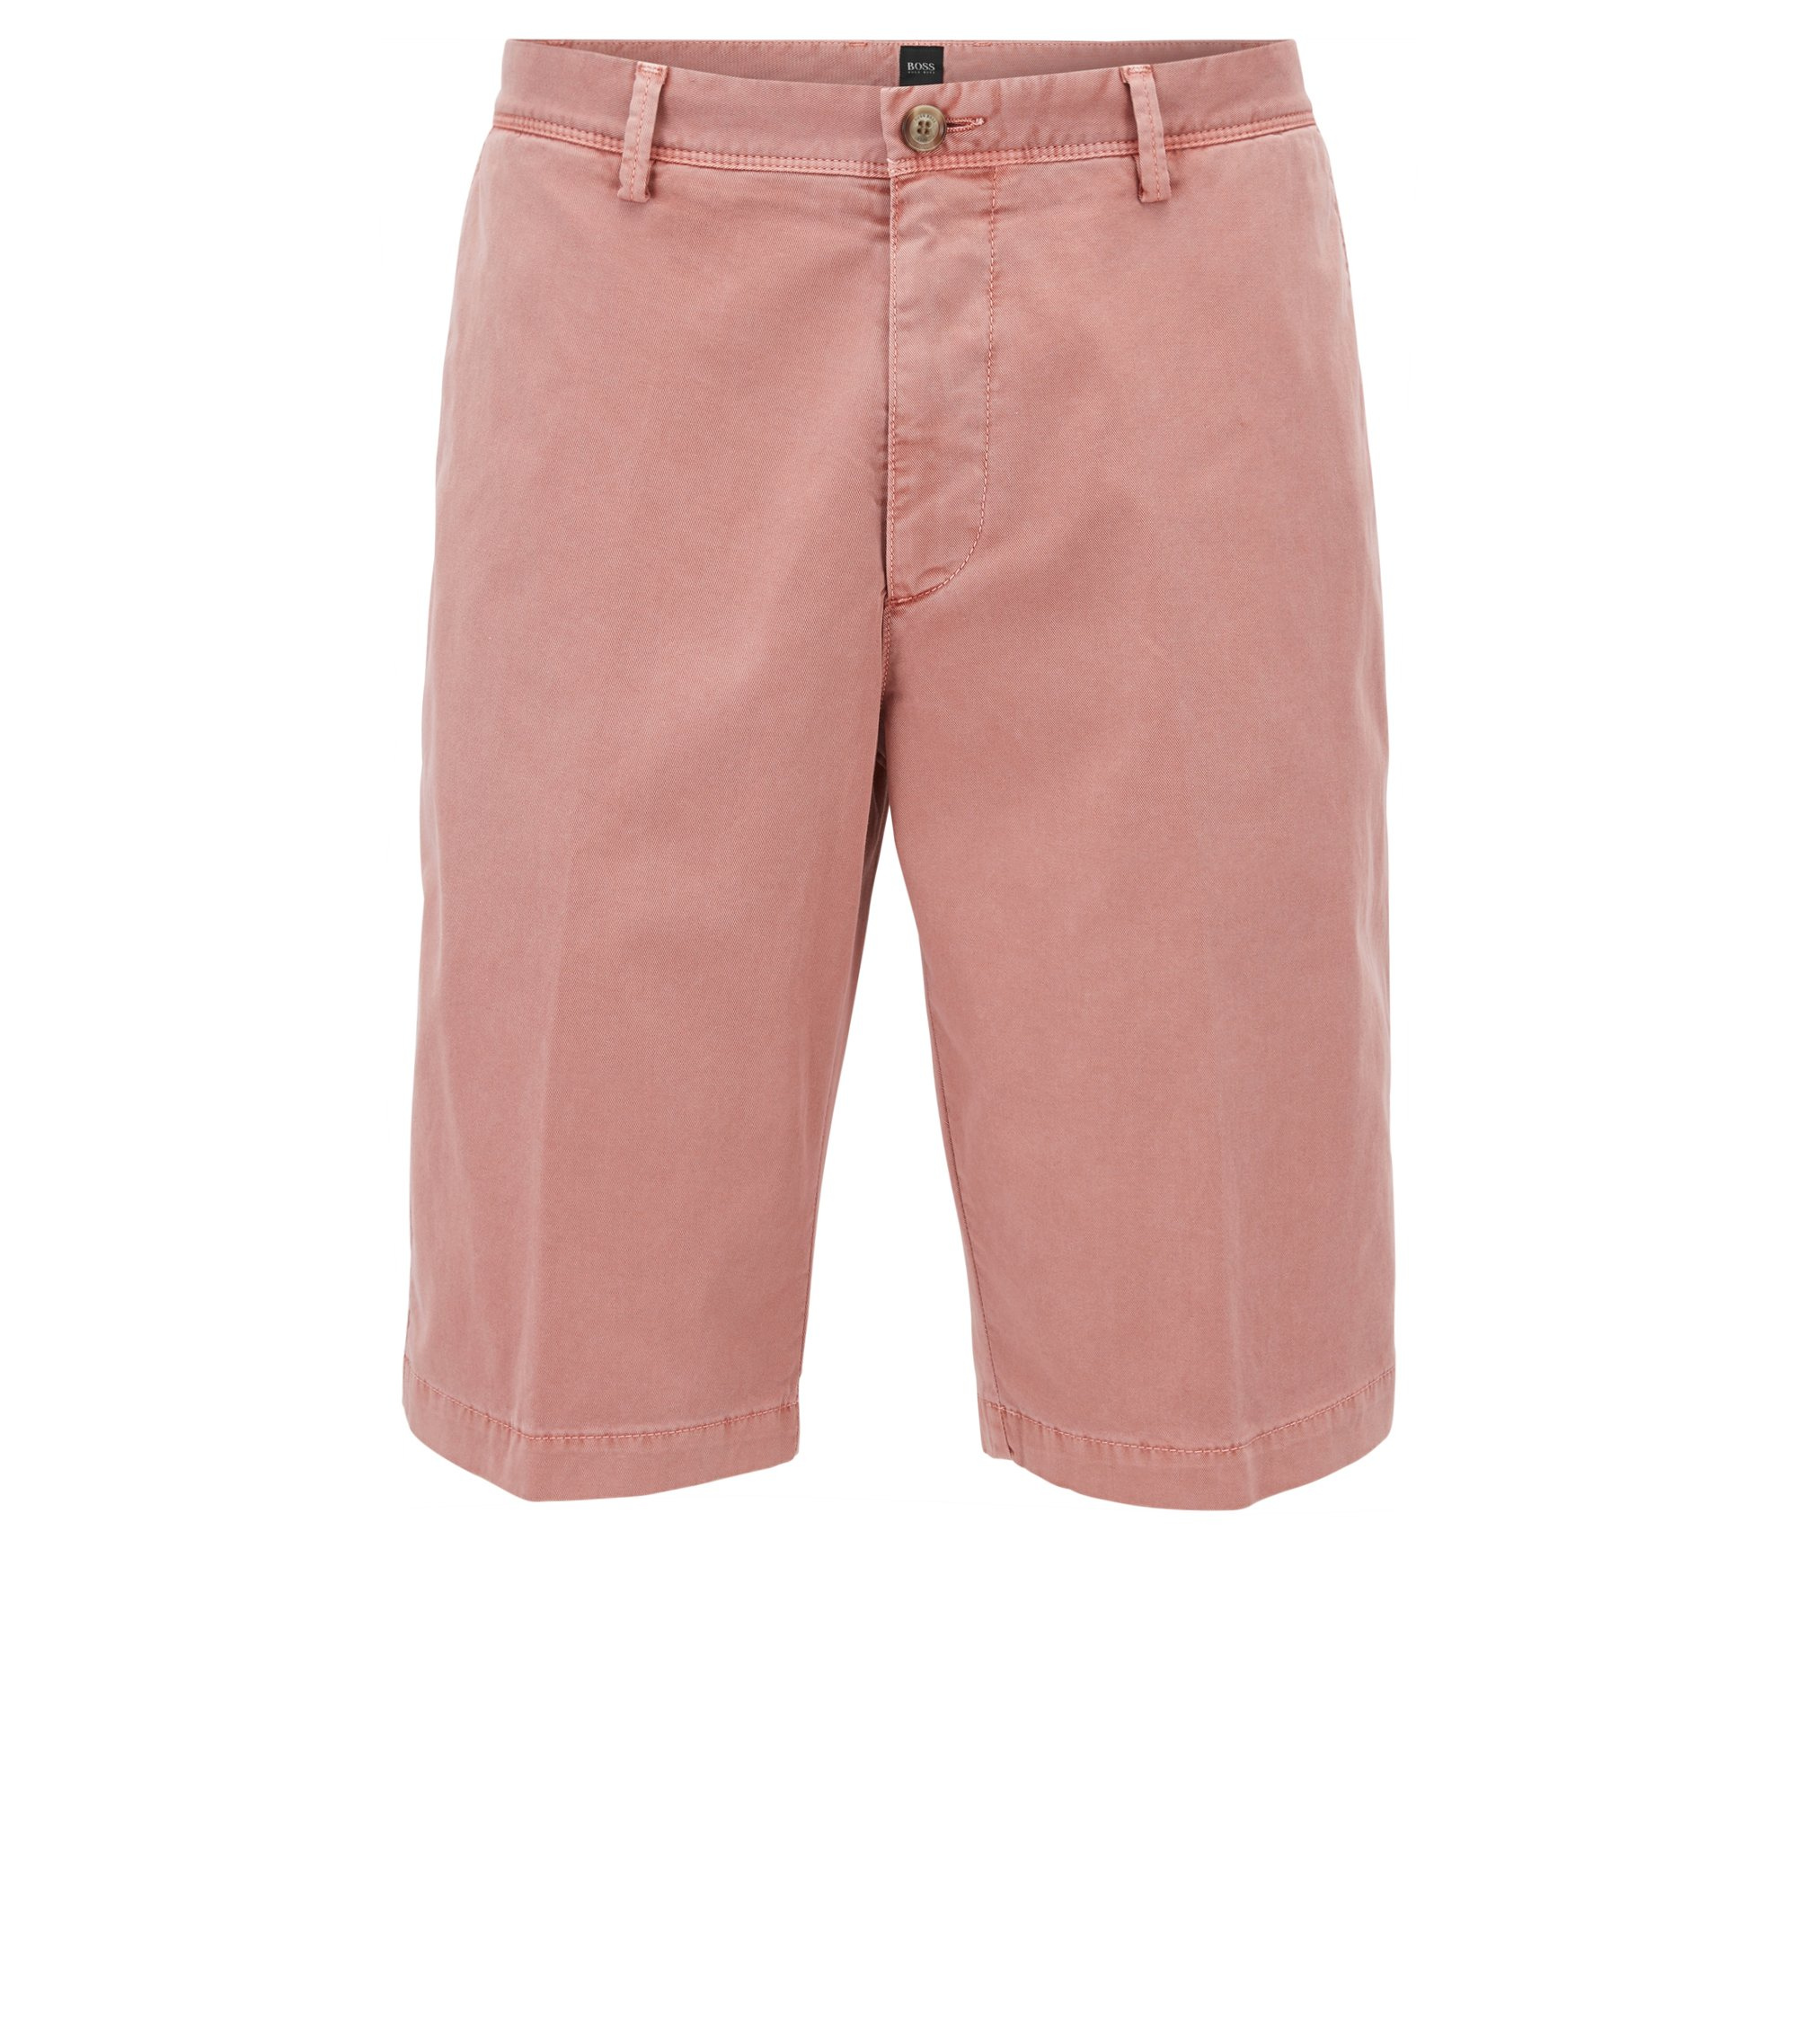 Pigmentgefärbte Regular-Fit Chino-Shorts, Hellrot